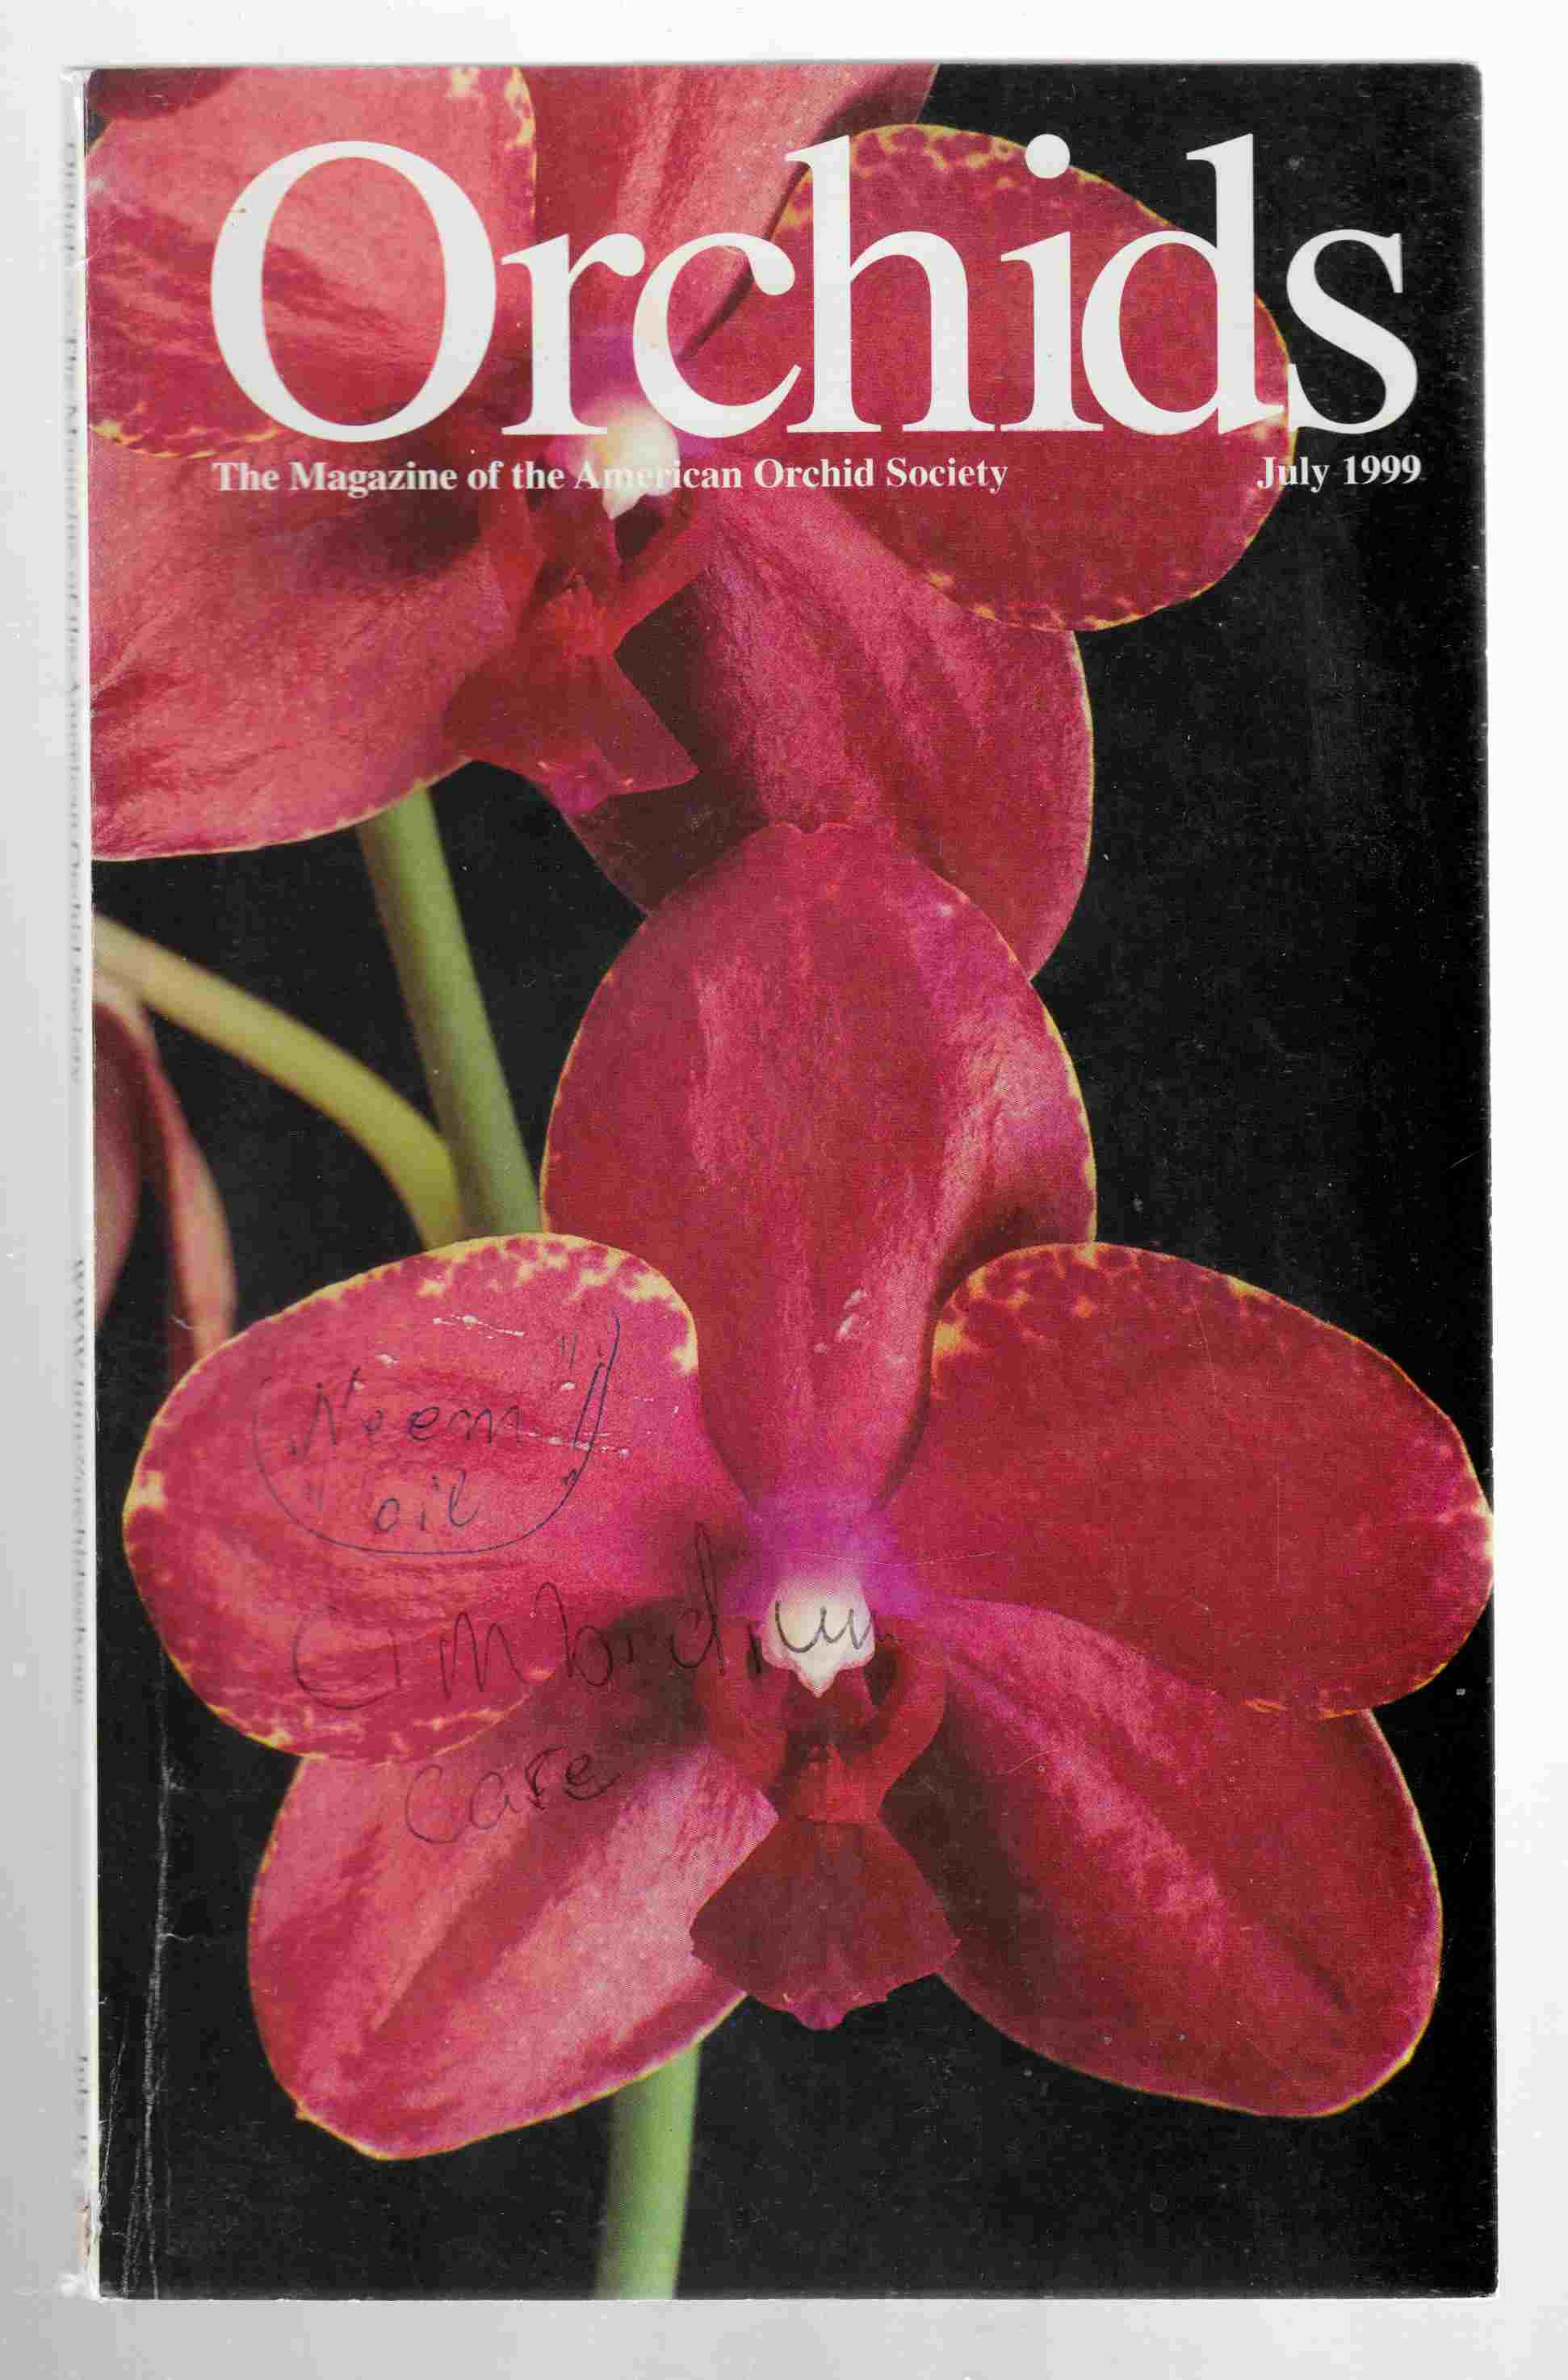 Image for Orchids Vol. 68, No. 7 July 1999